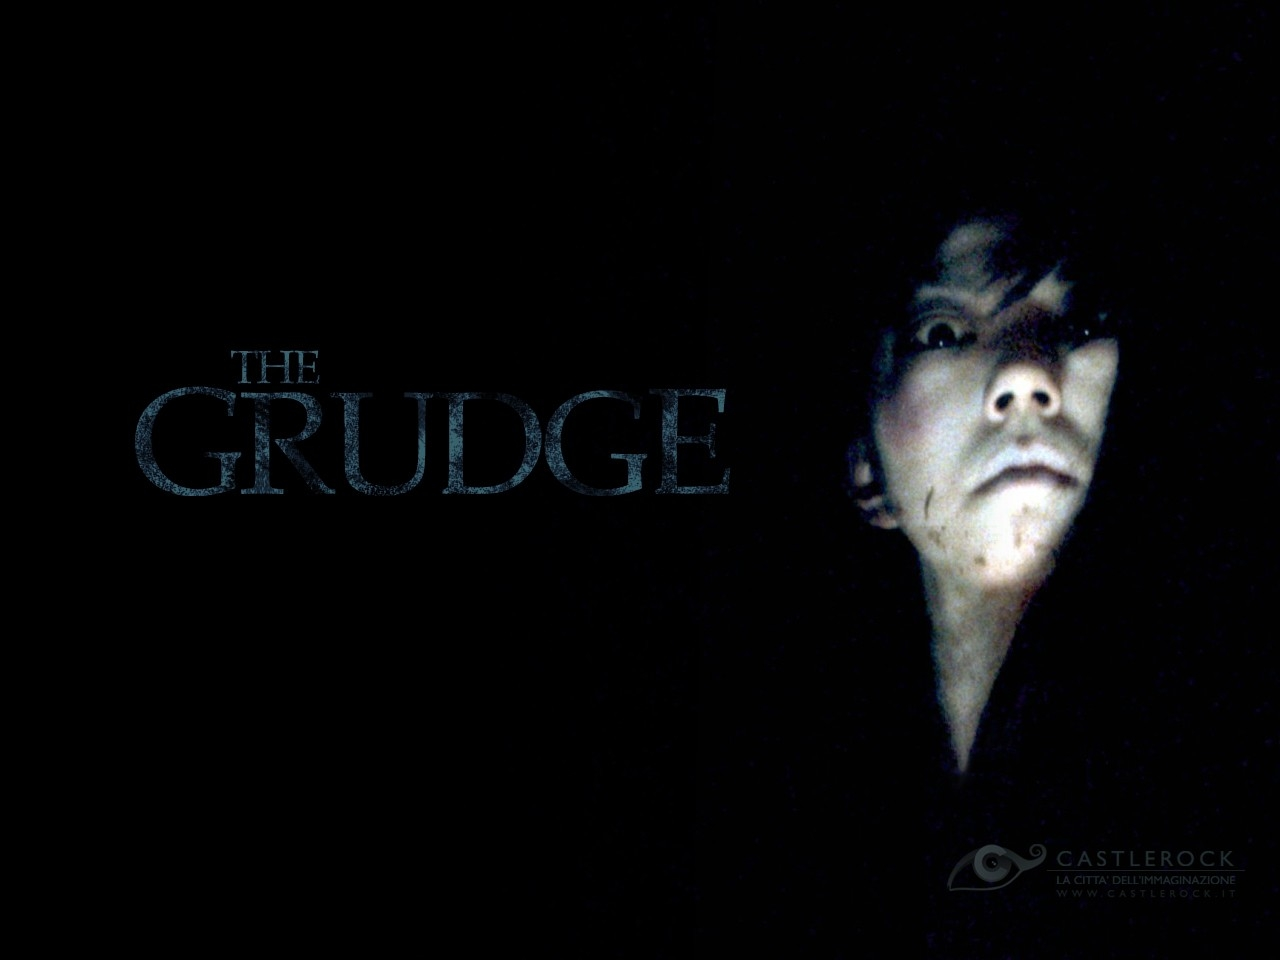 Wallpaper inquietante del film The Grudge